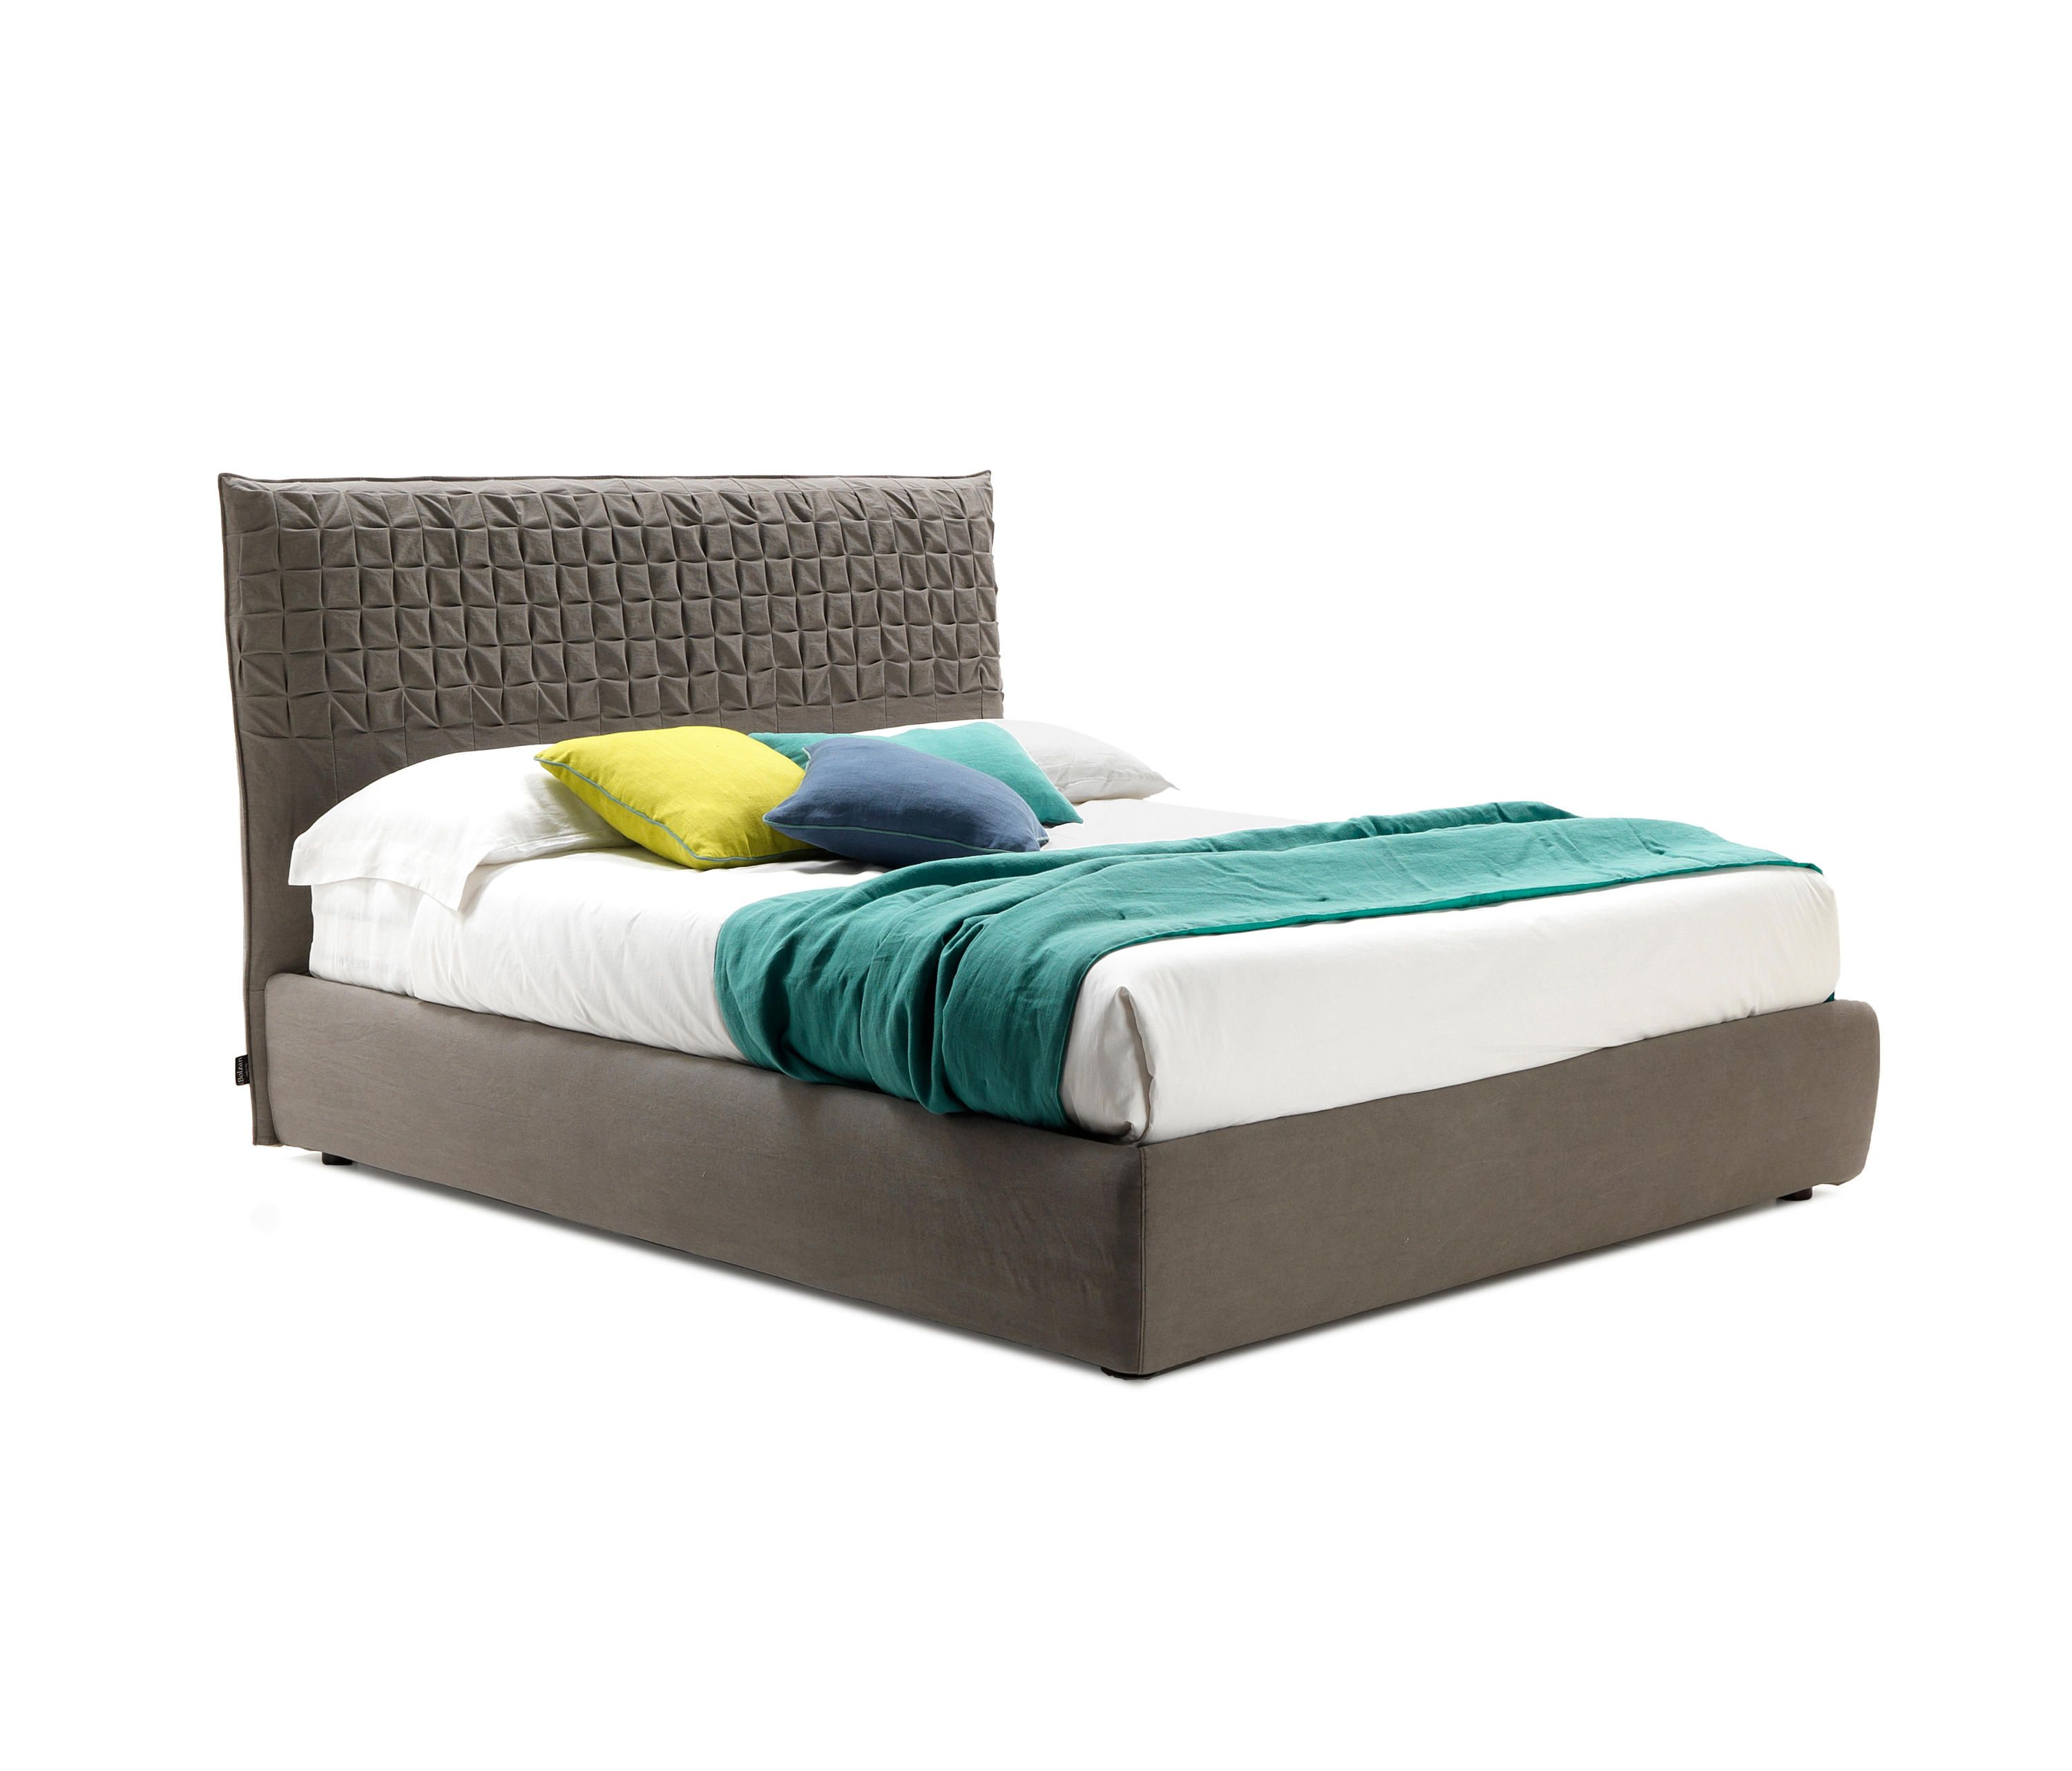 Sheen Big Designer Double Beds From Bolzan Letti All